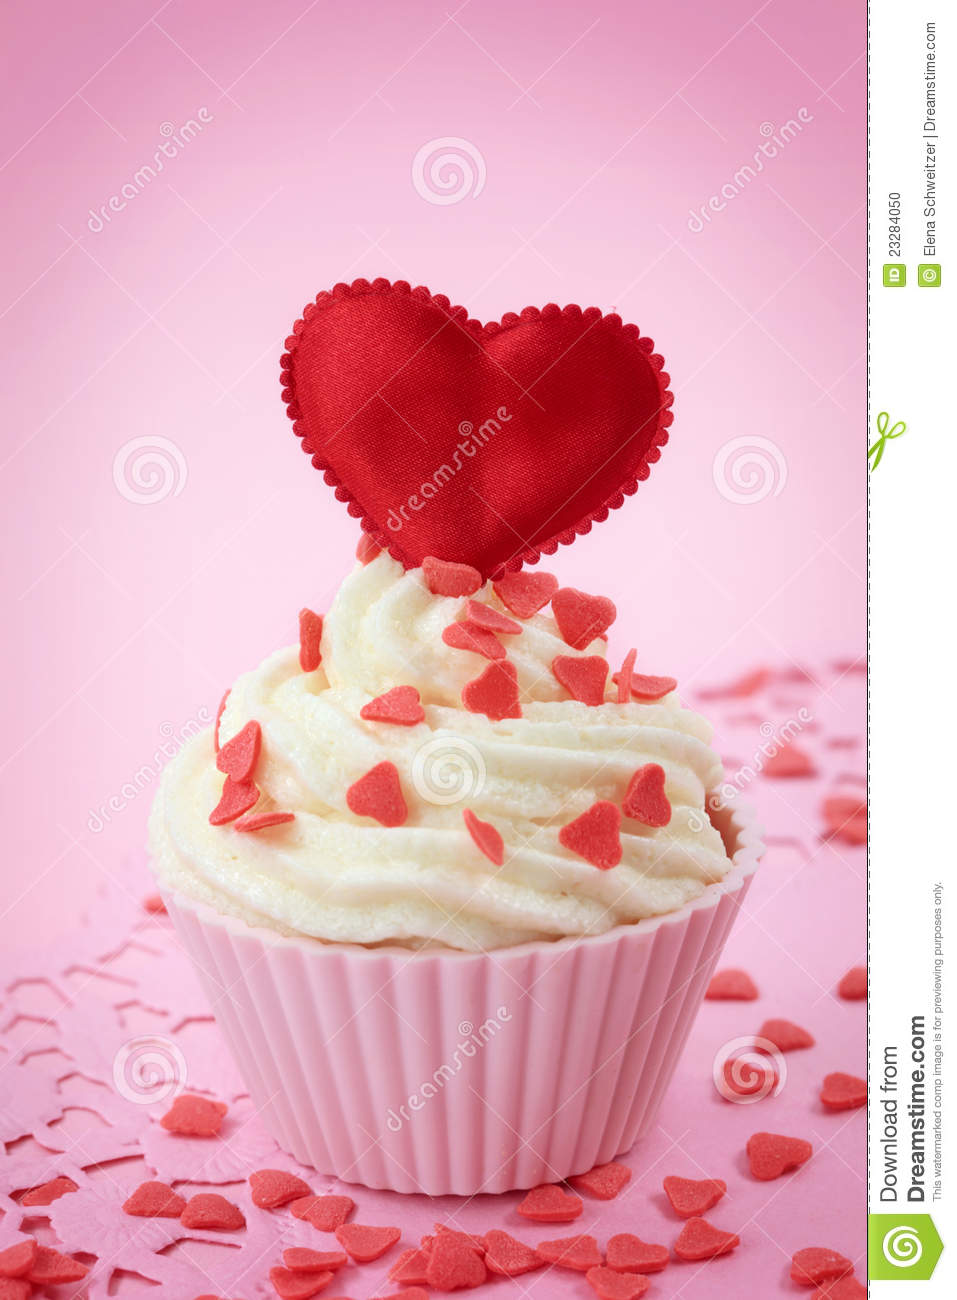 Heart Shaped Cake Stock Photos : Cup Cake With Heart Shaped Decoration Stock Photo - Image ...